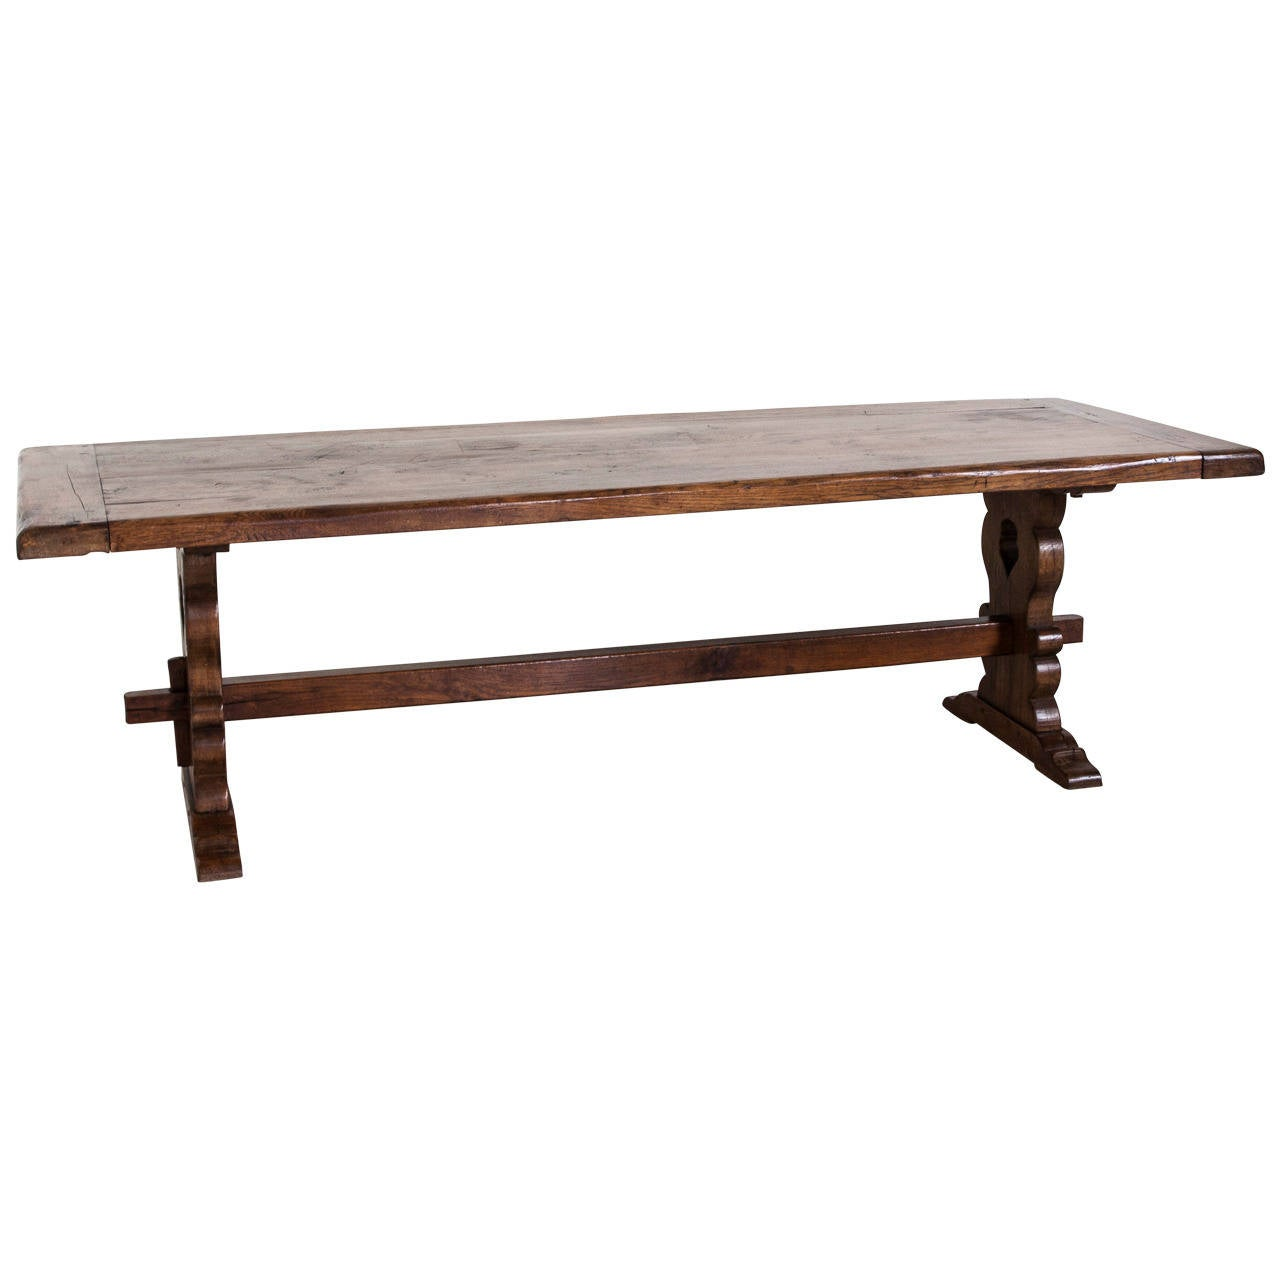 antique french solid oak trestle dining table from normandy circa 1900 at 1stdibs. Black Bedroom Furniture Sets. Home Design Ideas